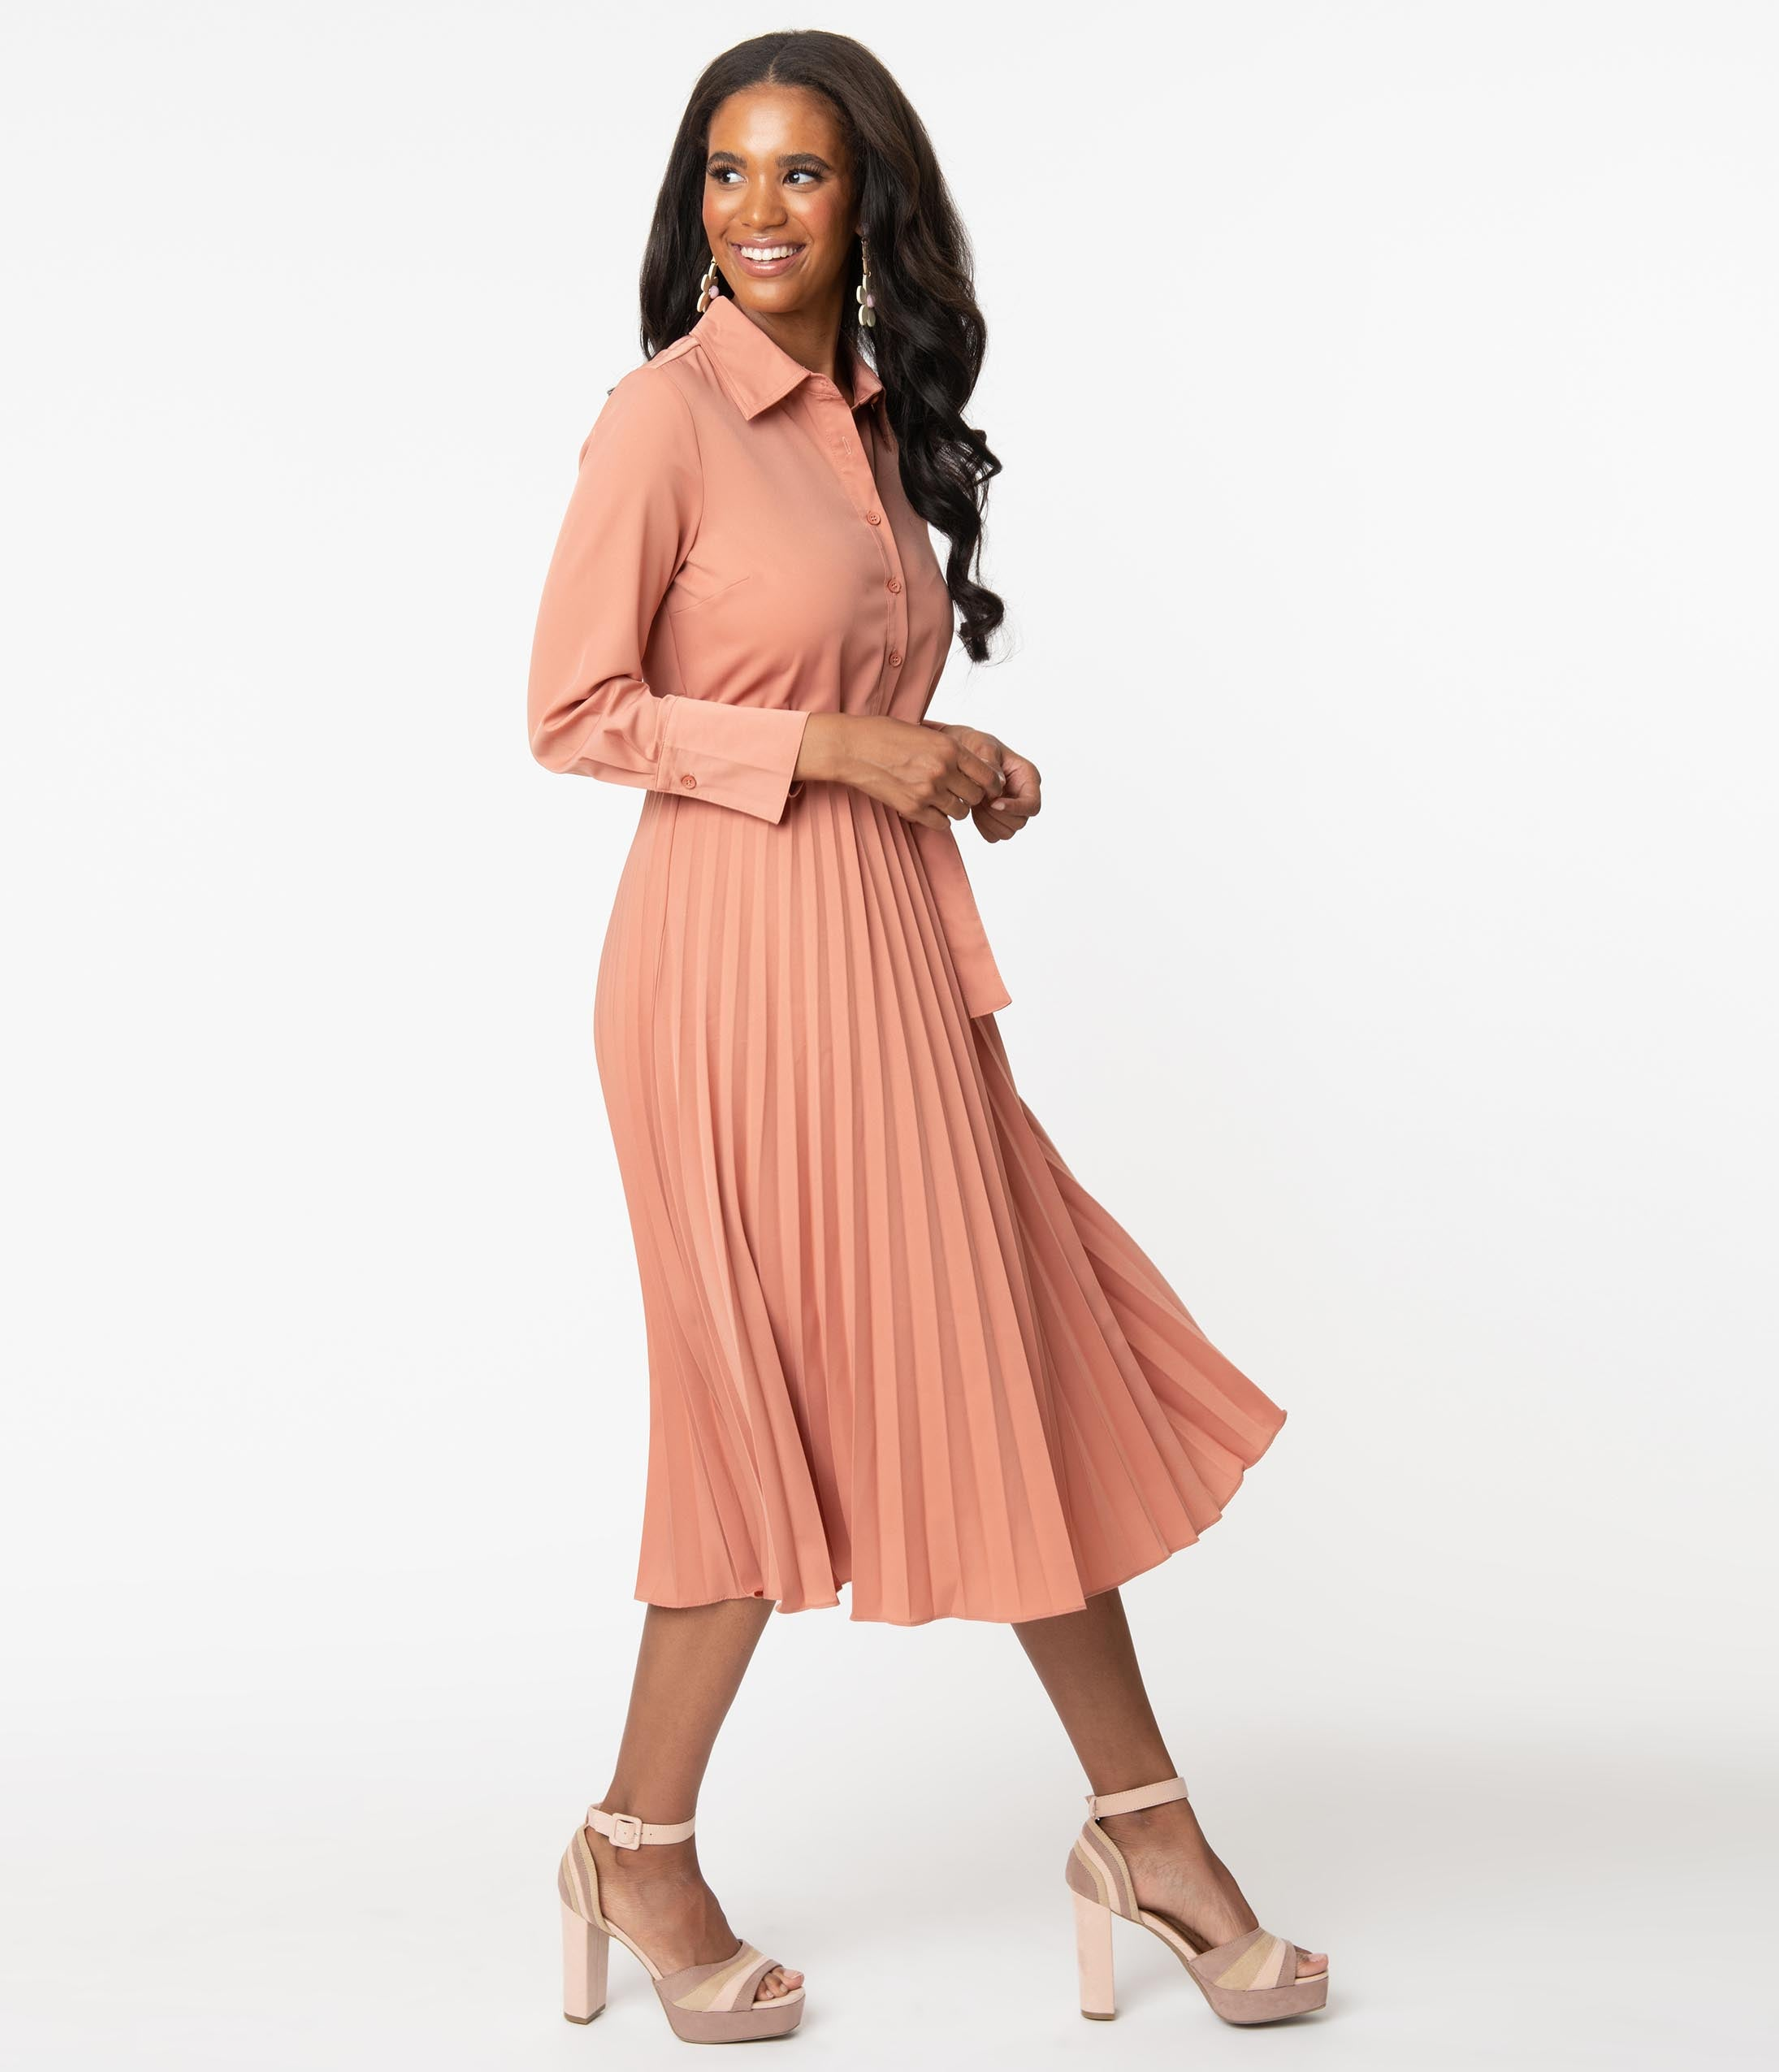 Swing Dance Clothing You Can Dance In 1940S Style Dusty Rose Pleated Midi Dress $68.00 AT vintagedancer.com